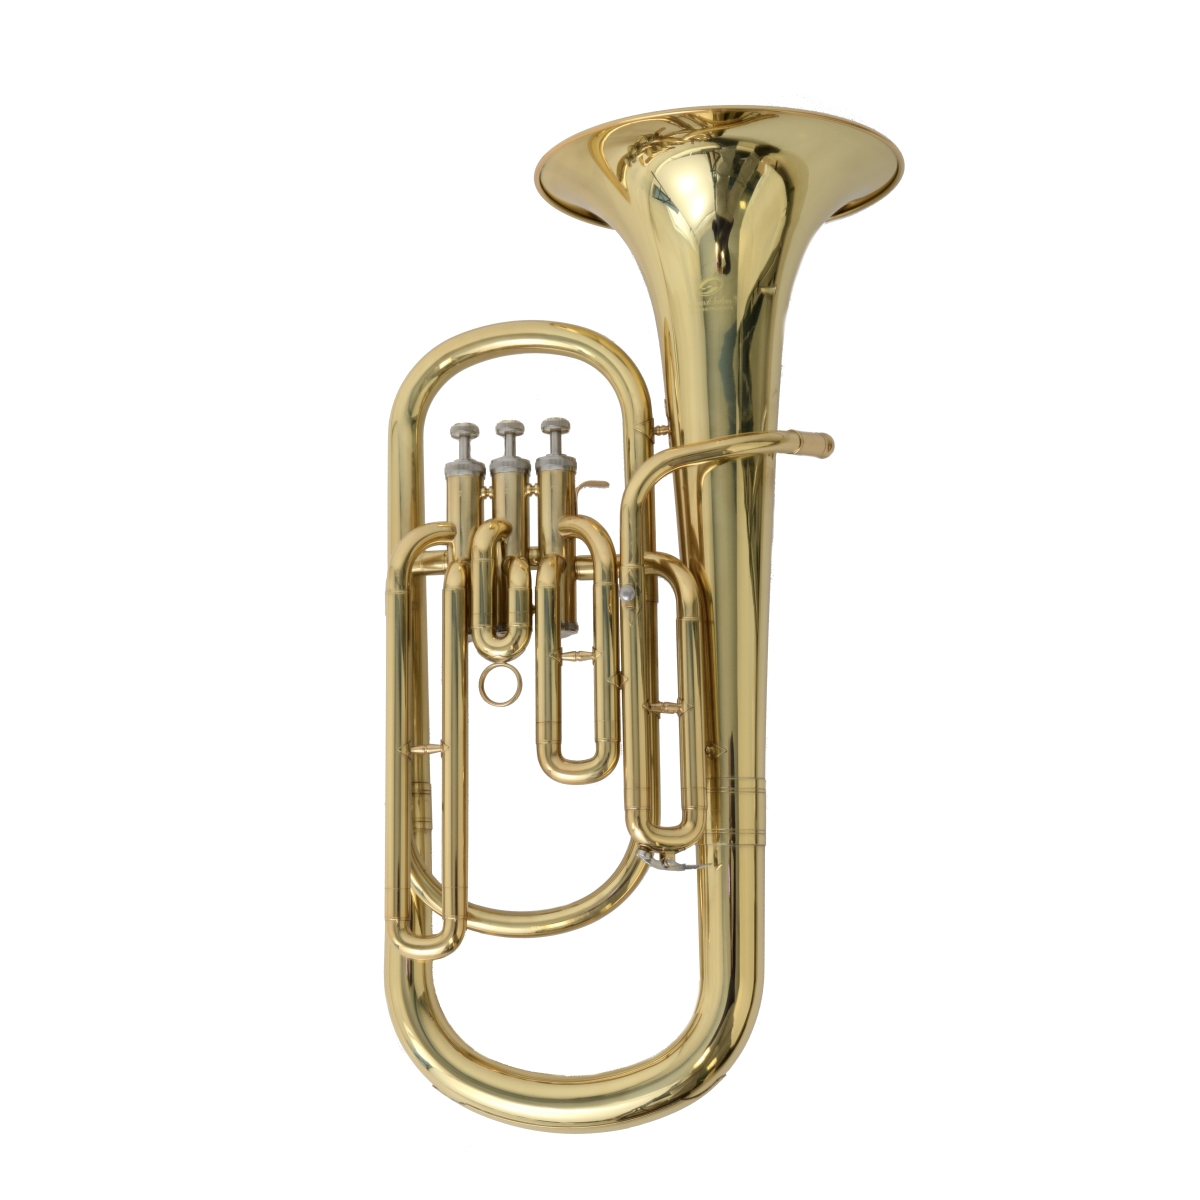 FLICORNO BARITONO SFB-10G in Sib GOLD SOUNDSATION